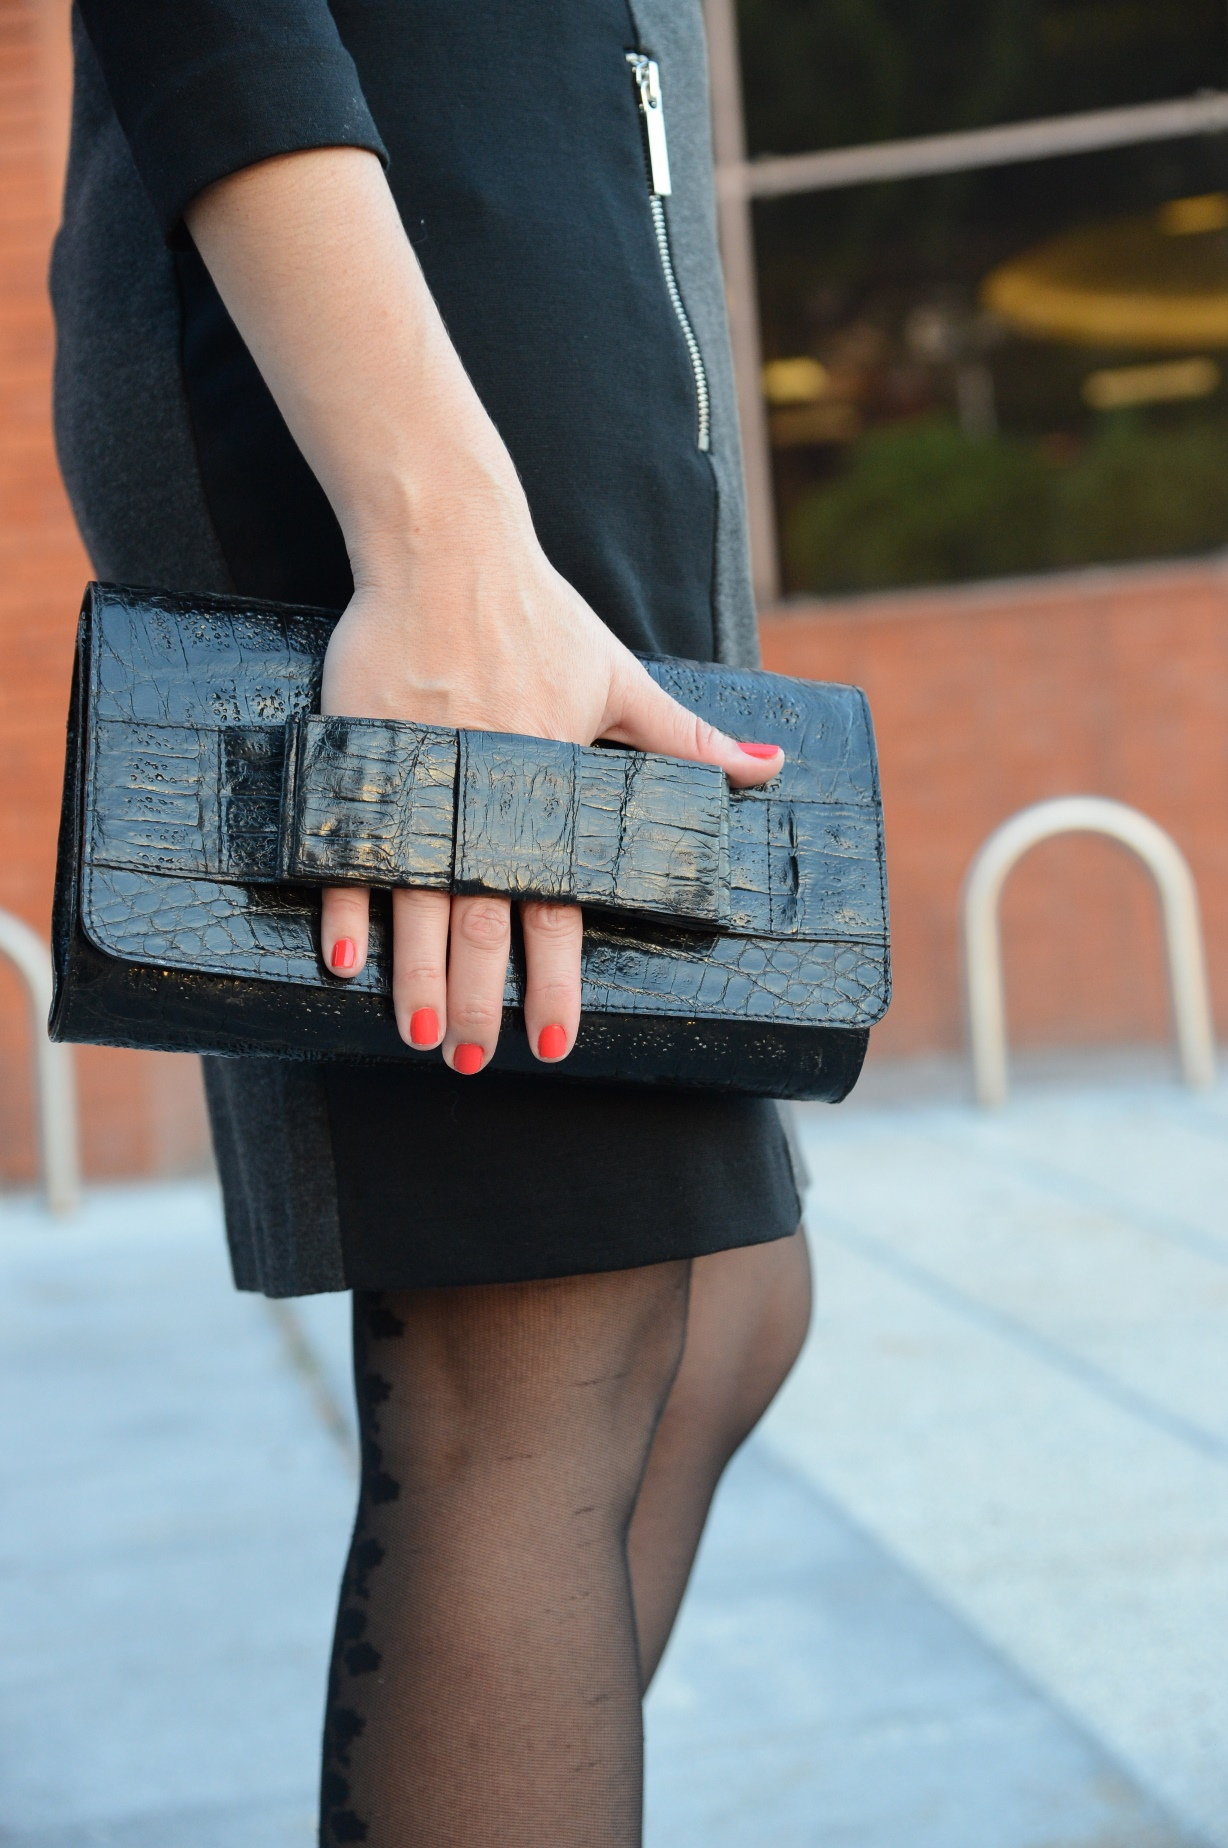 La Cartera, un complemento imprescindible en WorkingOutfits